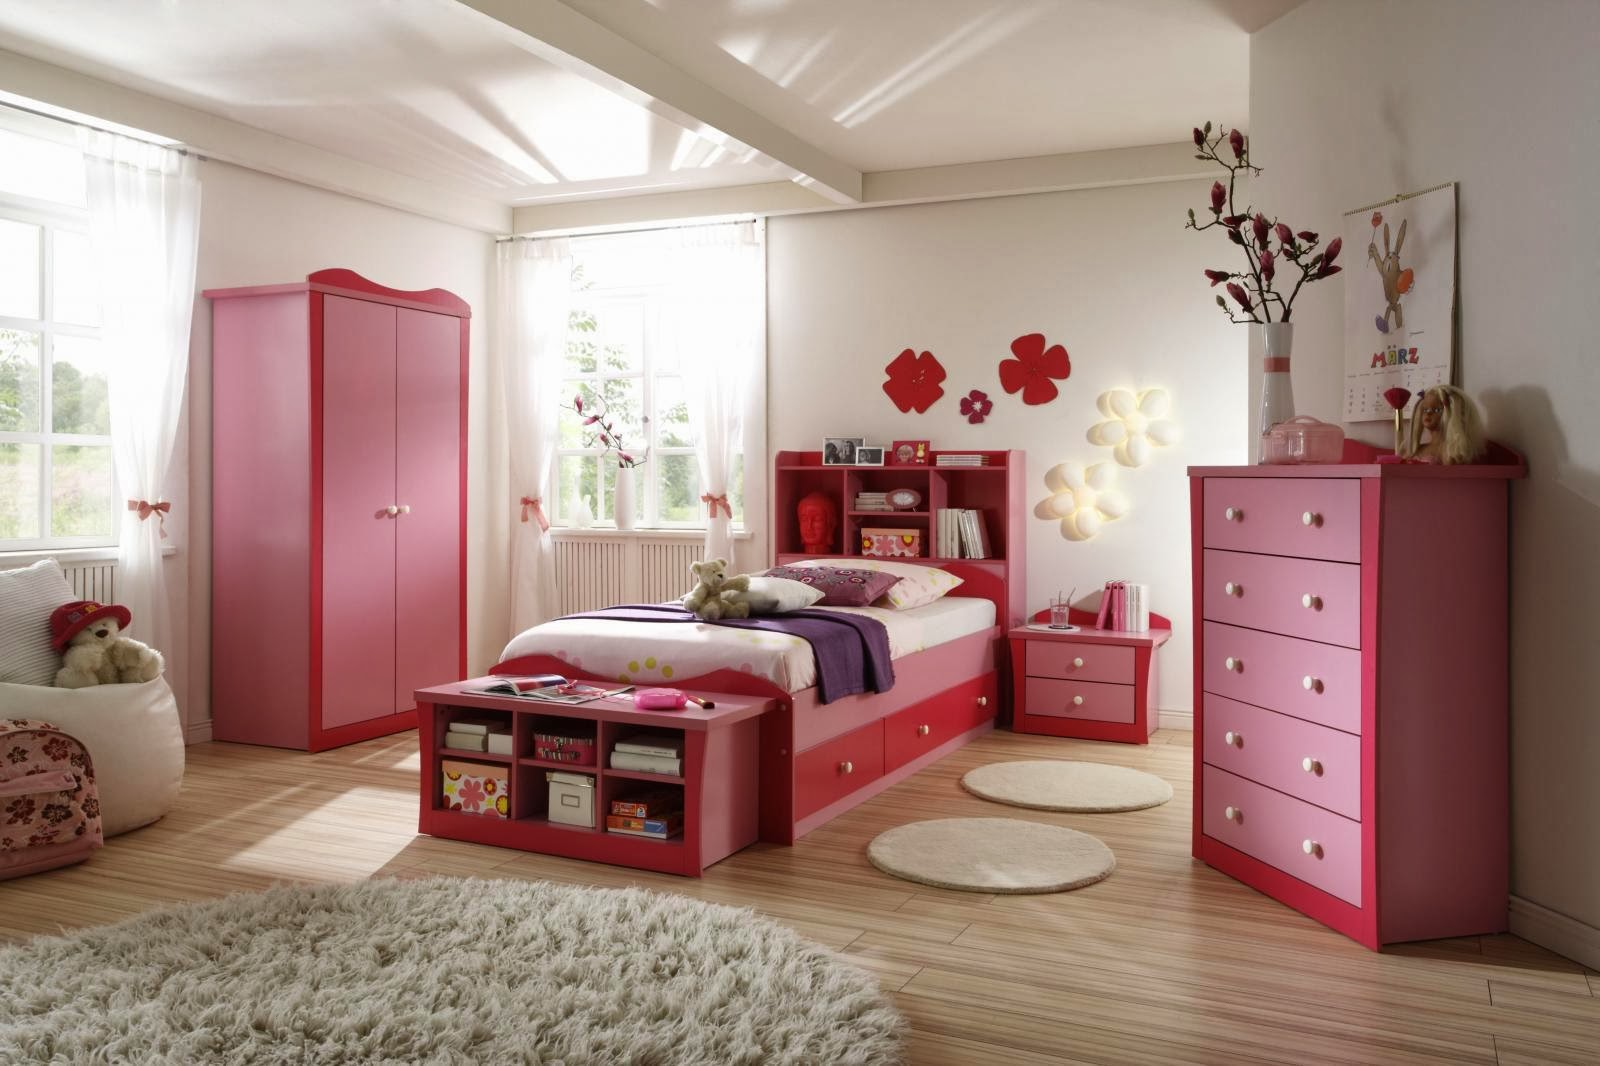 Home Decorating Interior Design Ideas: Pink Bedding for a ...